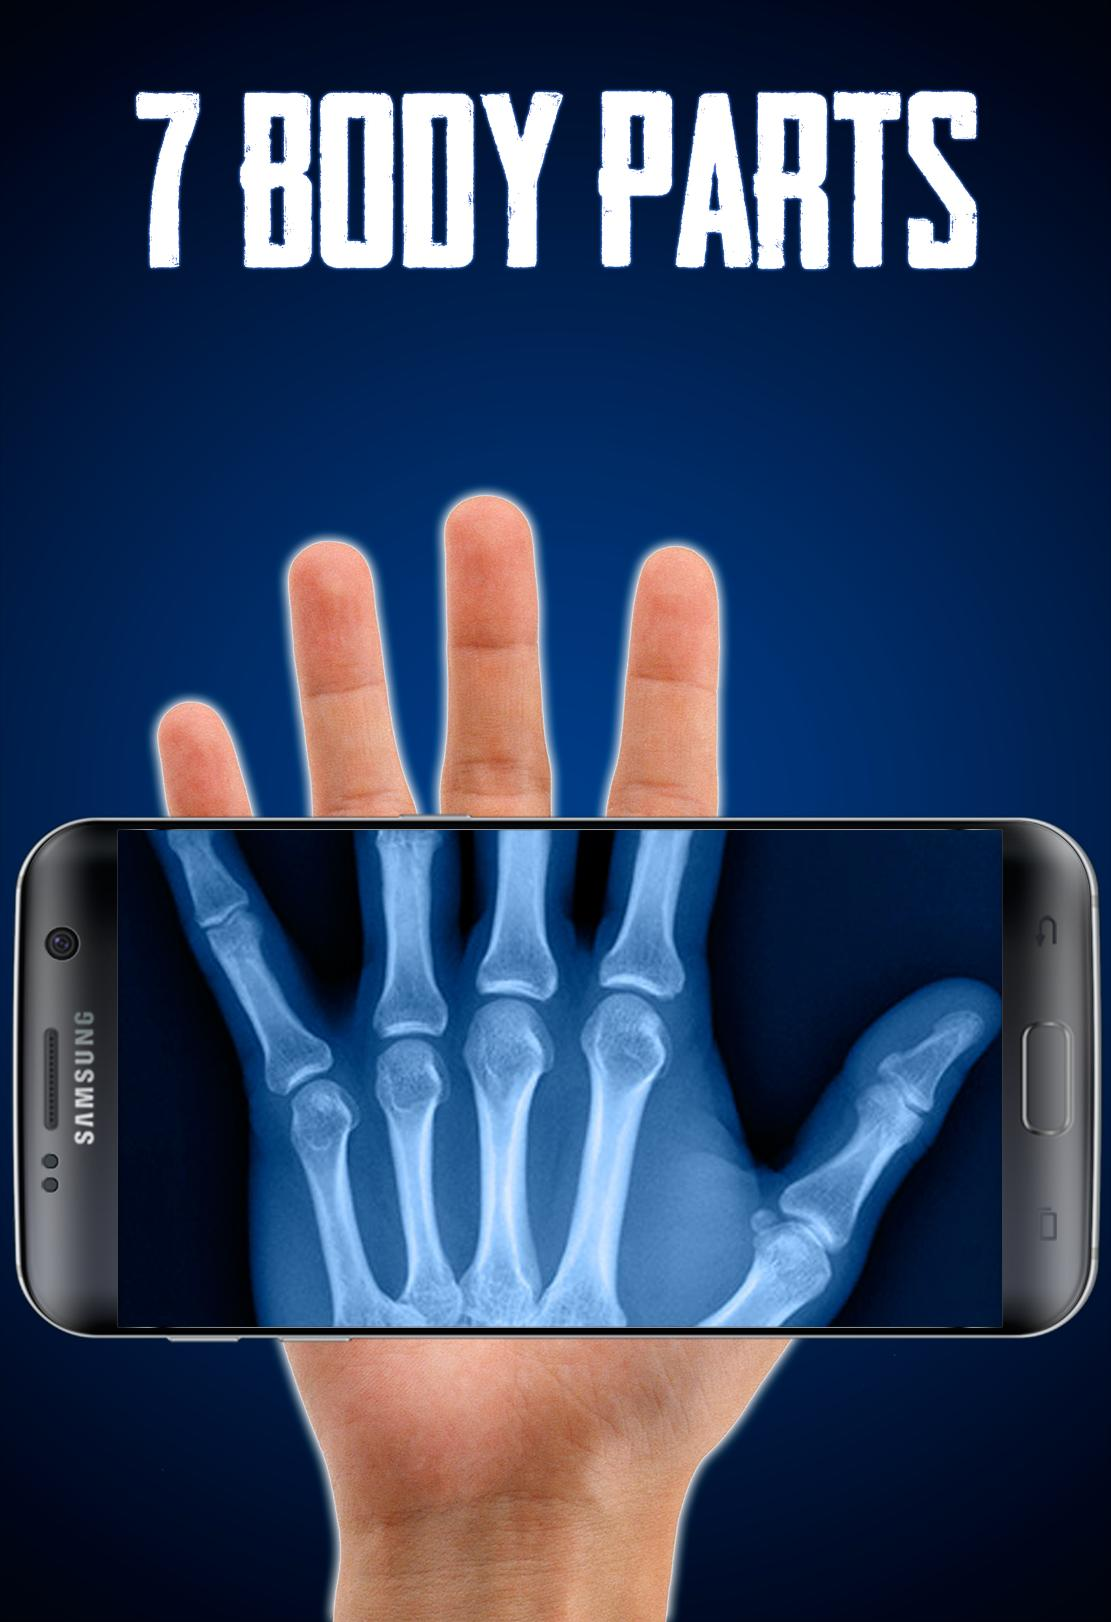 Scan with X-ray (simulation) for Android - APK Download